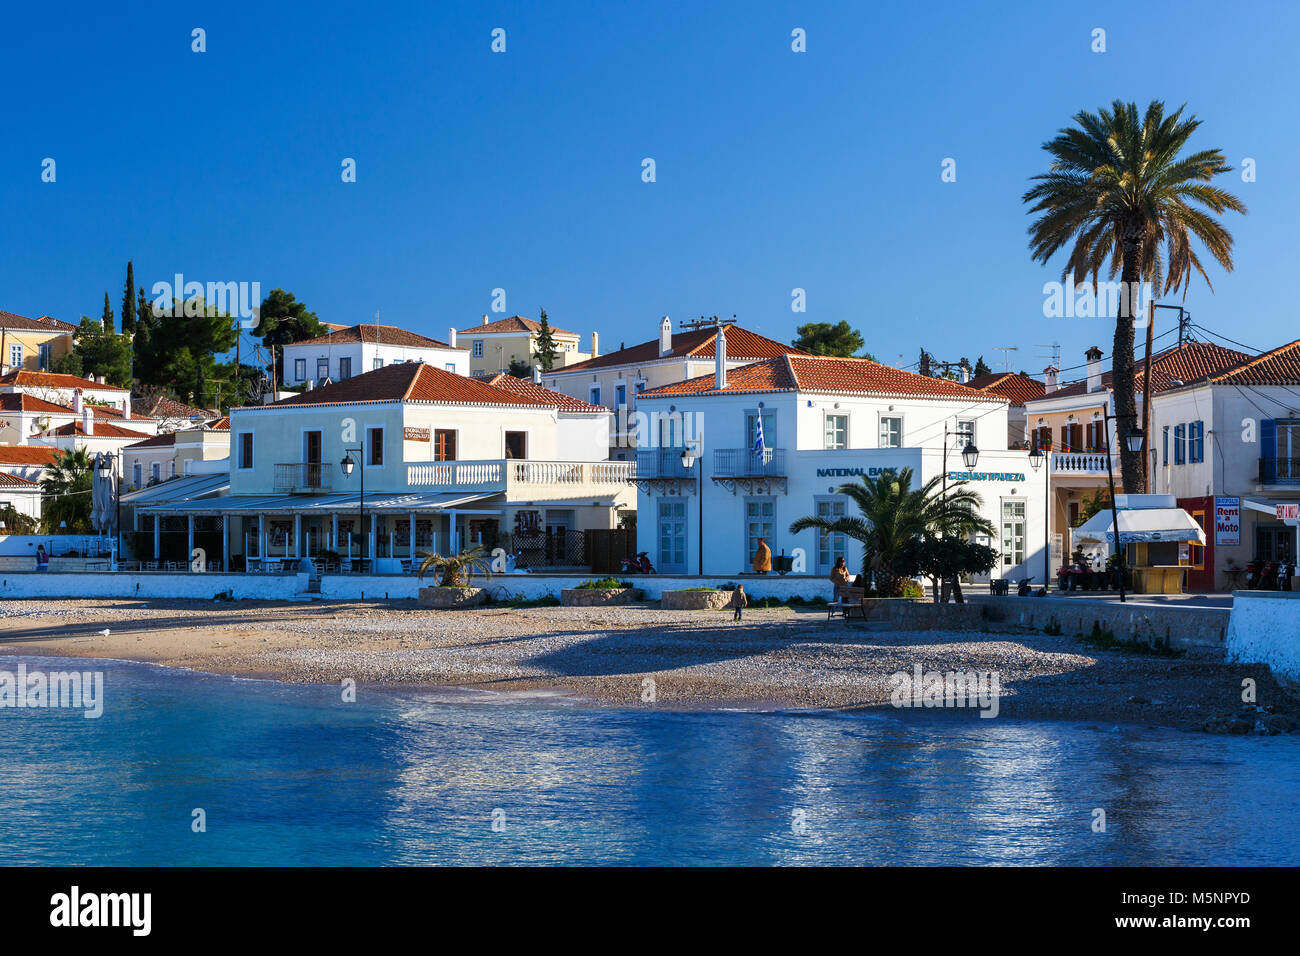 View of traditional architecture in Spetses village, Greece. - Stock Image